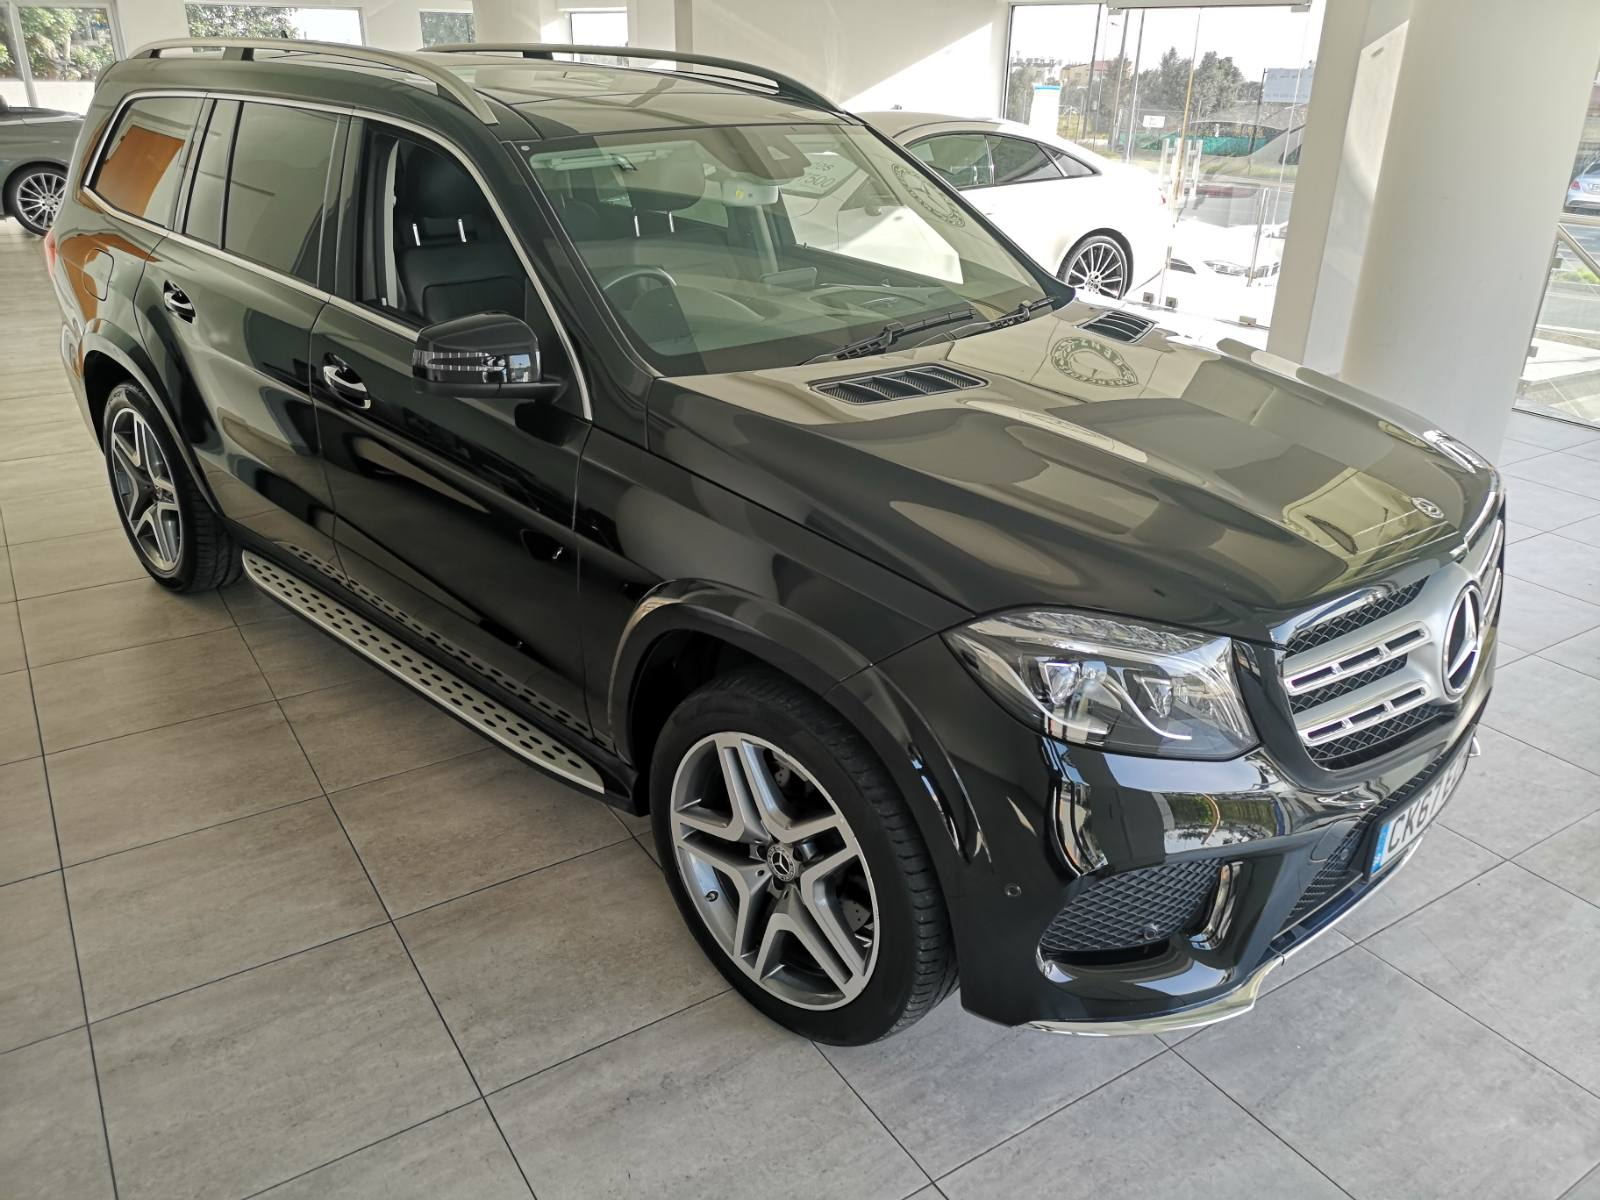 Mercedes GLS 350D 4MATIC  7 Seater